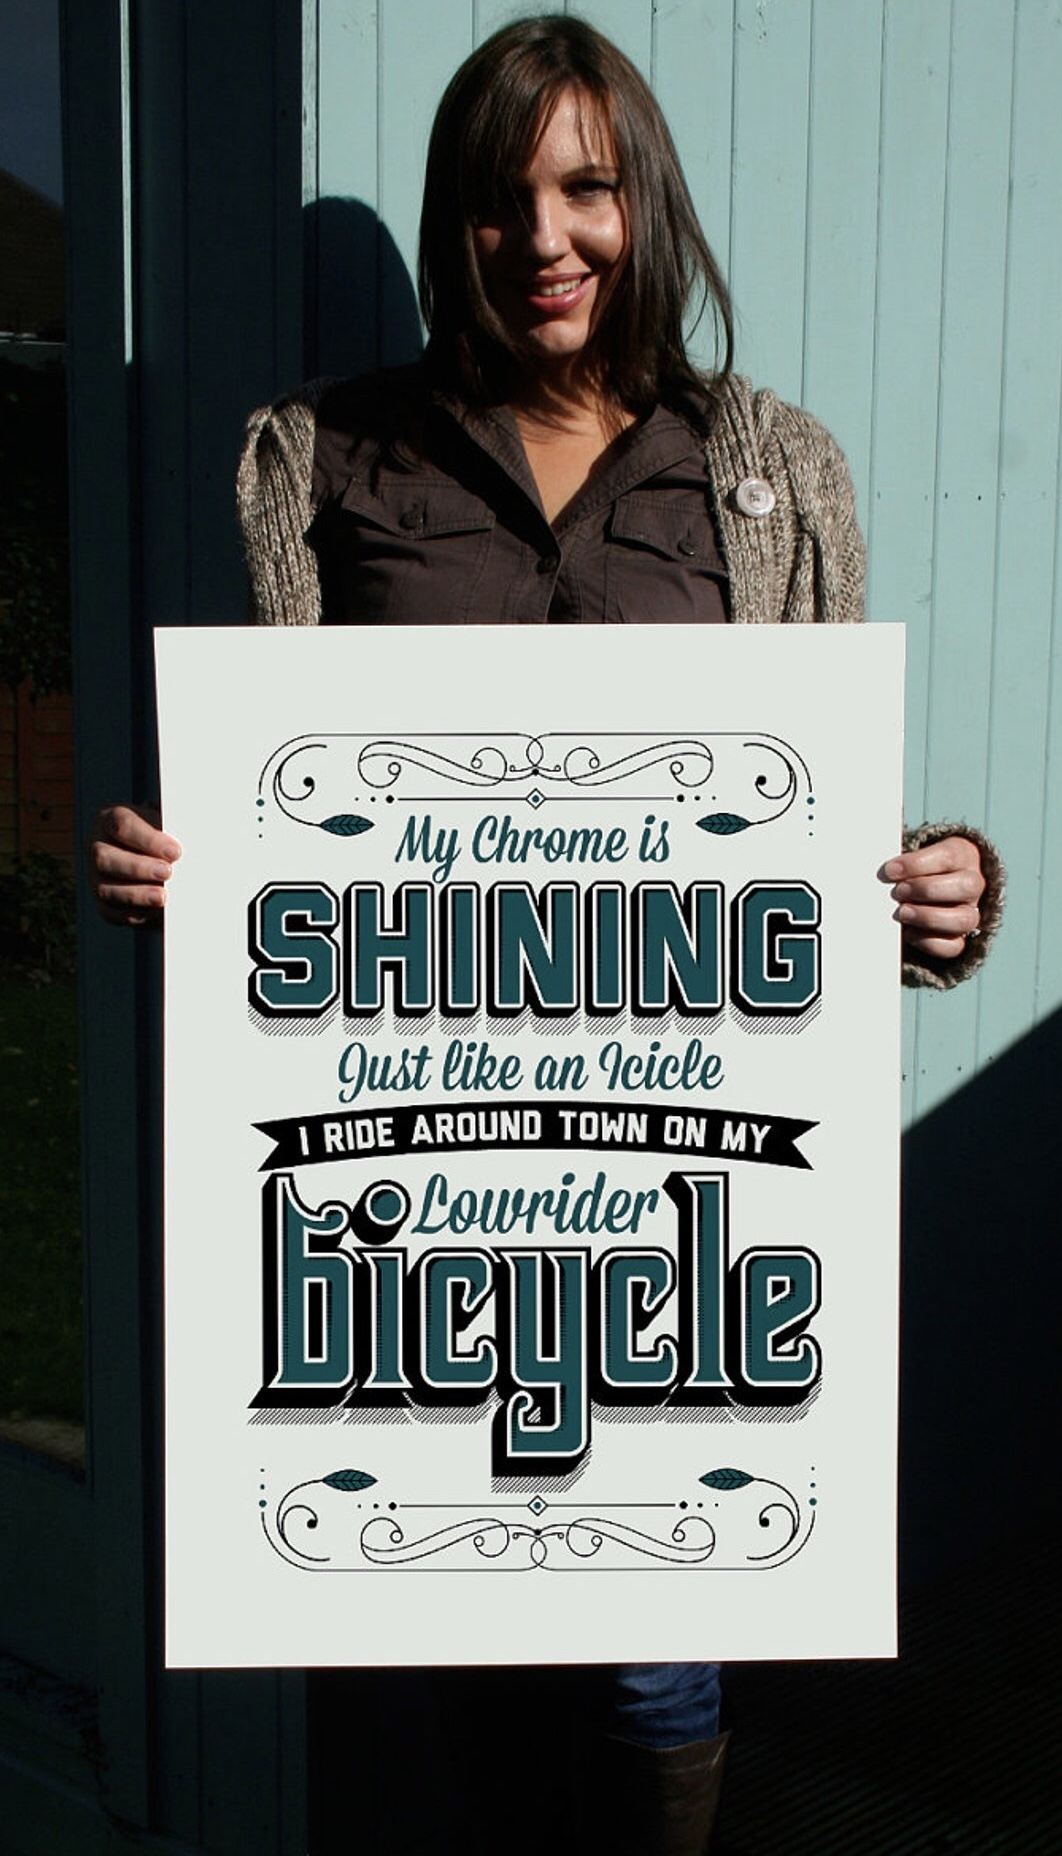 Neal's wife Julie with the Lowrider 500x700mm print on Etsy £15